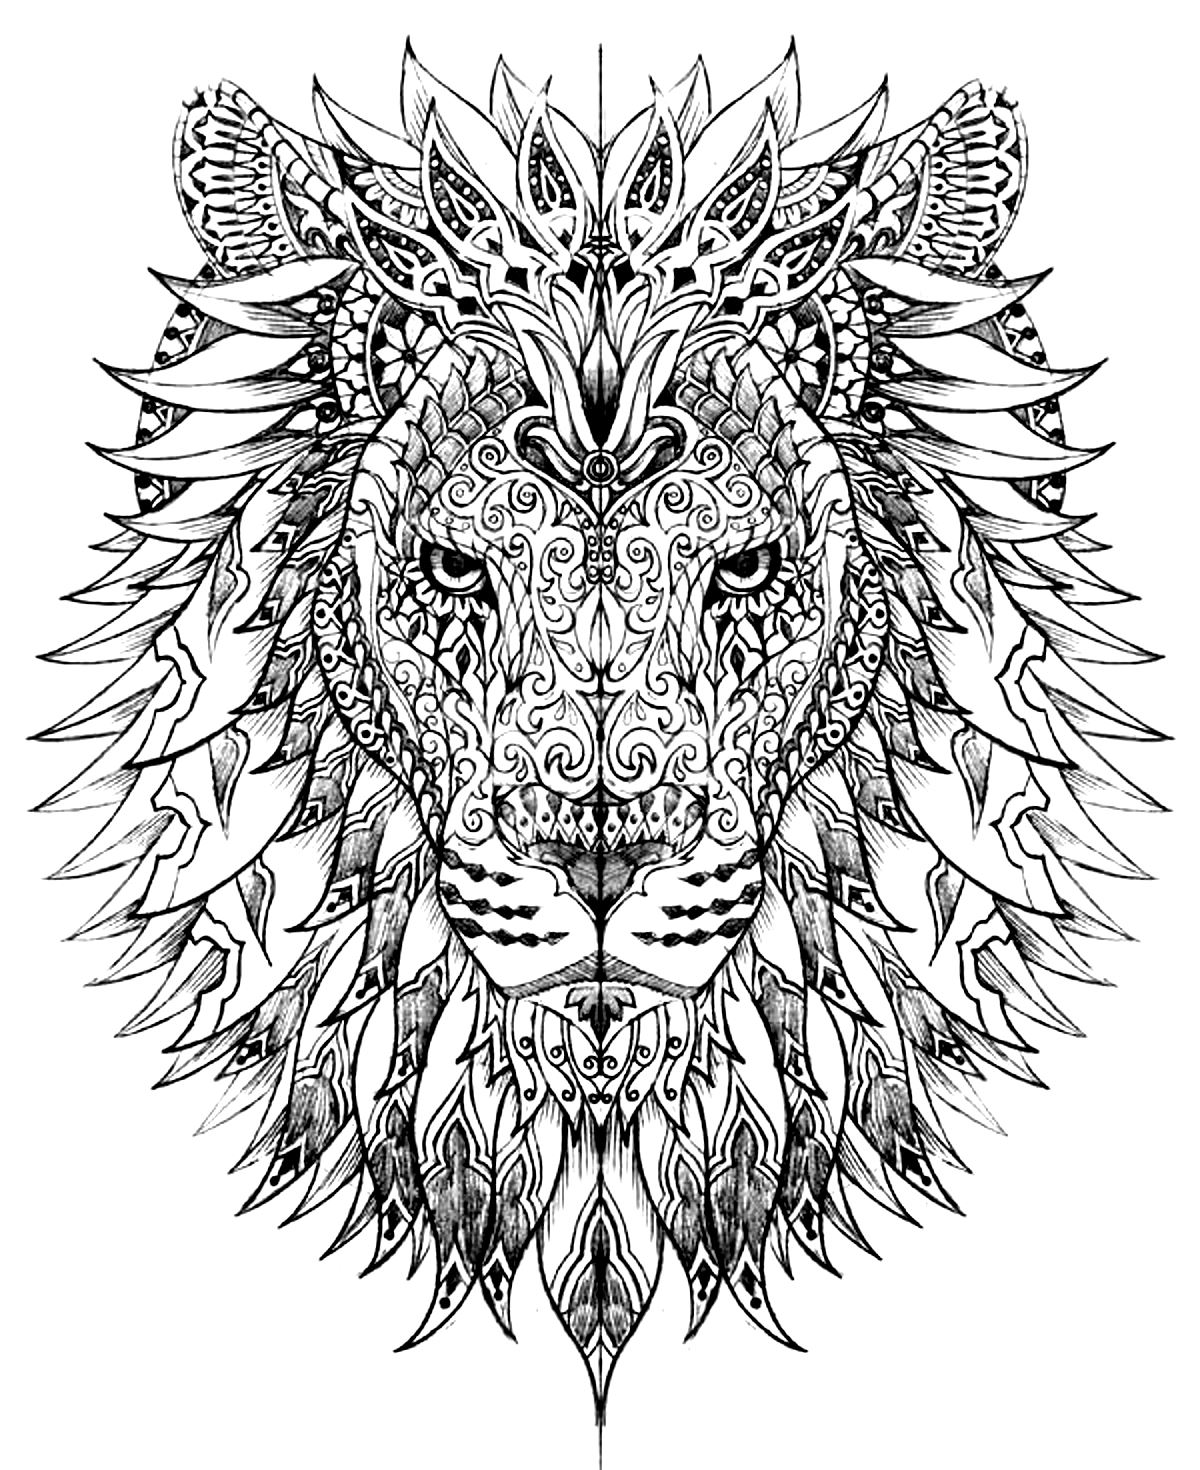 intricate coloring pages for kids intricate coloring pages for kids kids coloring intricate for pages